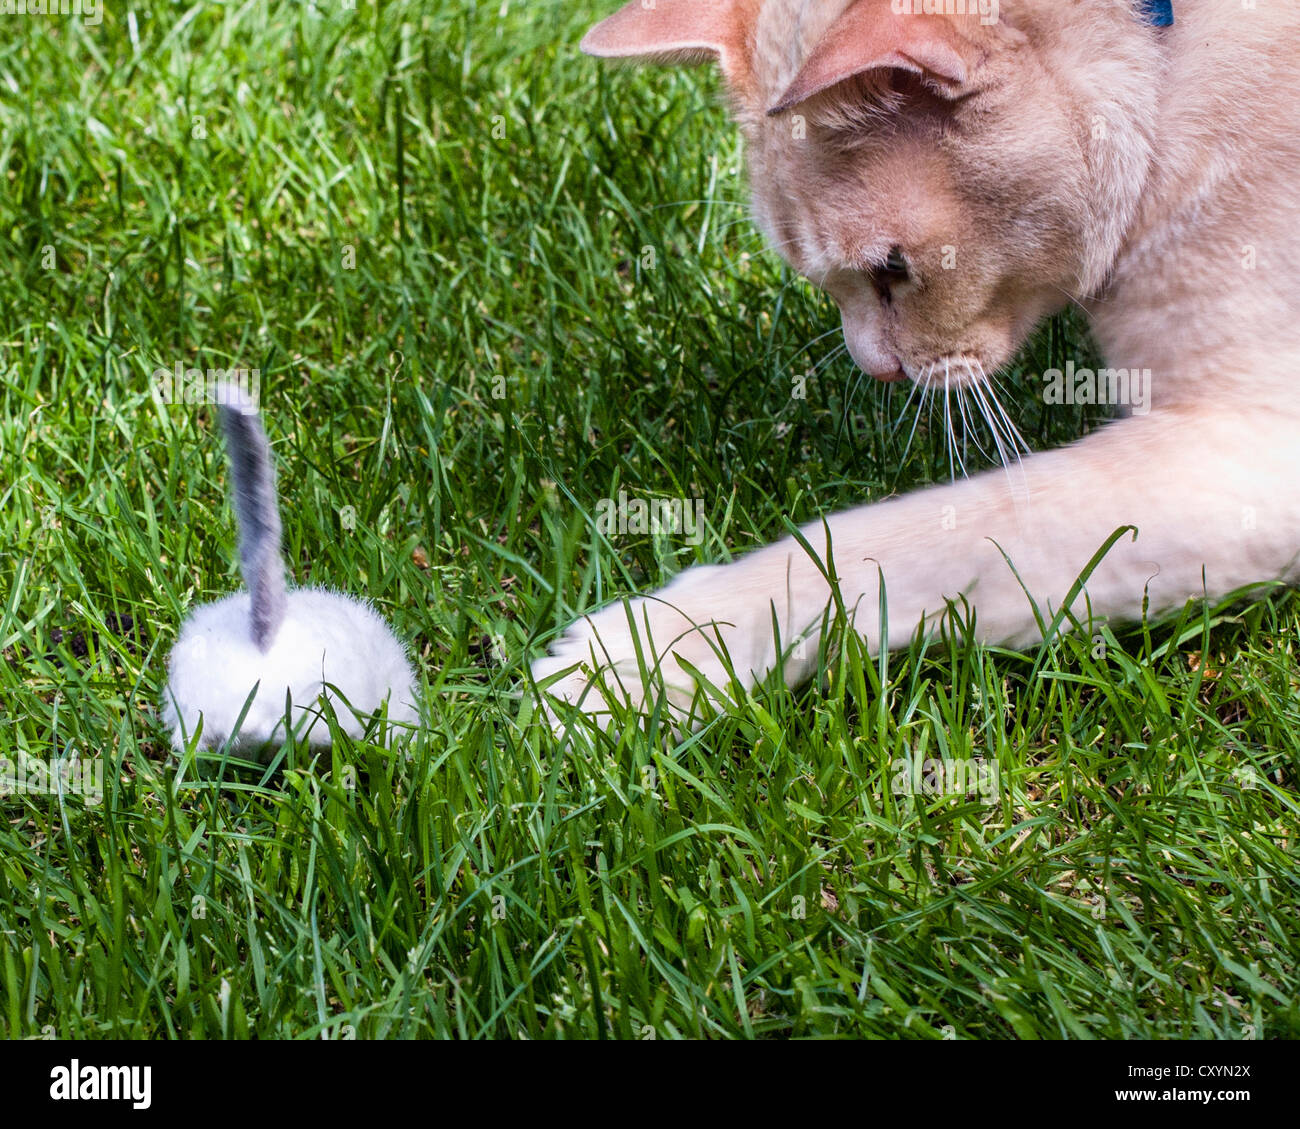 Red Burmese cat playing with a toy mouse on grass Stock Photo